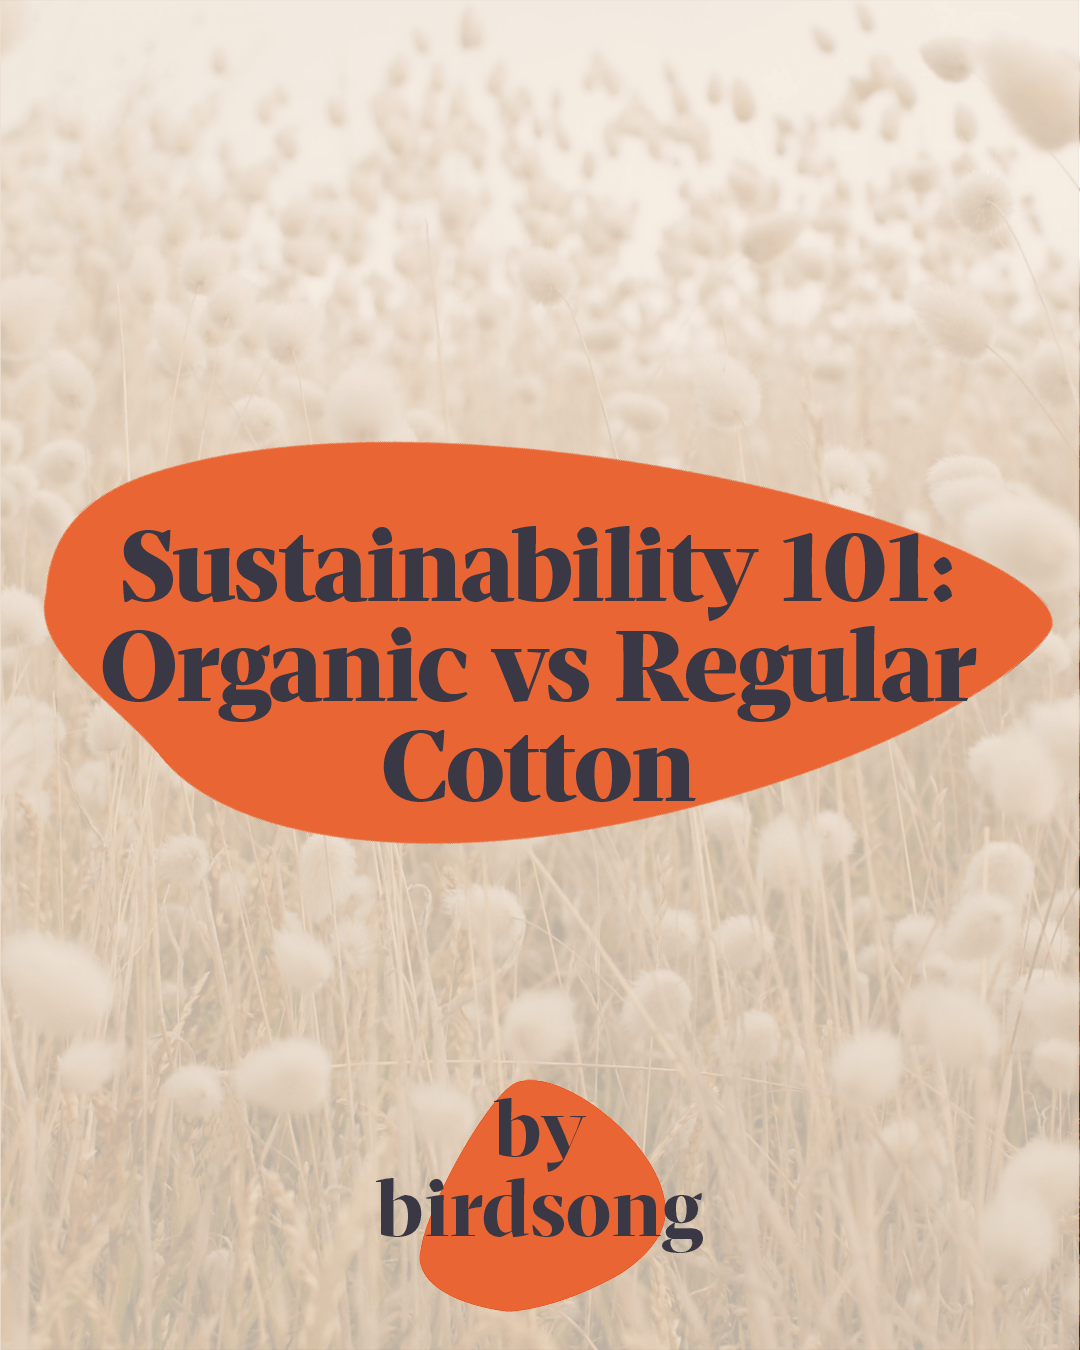 Sustainability 101: Organic vs Regular Cotton